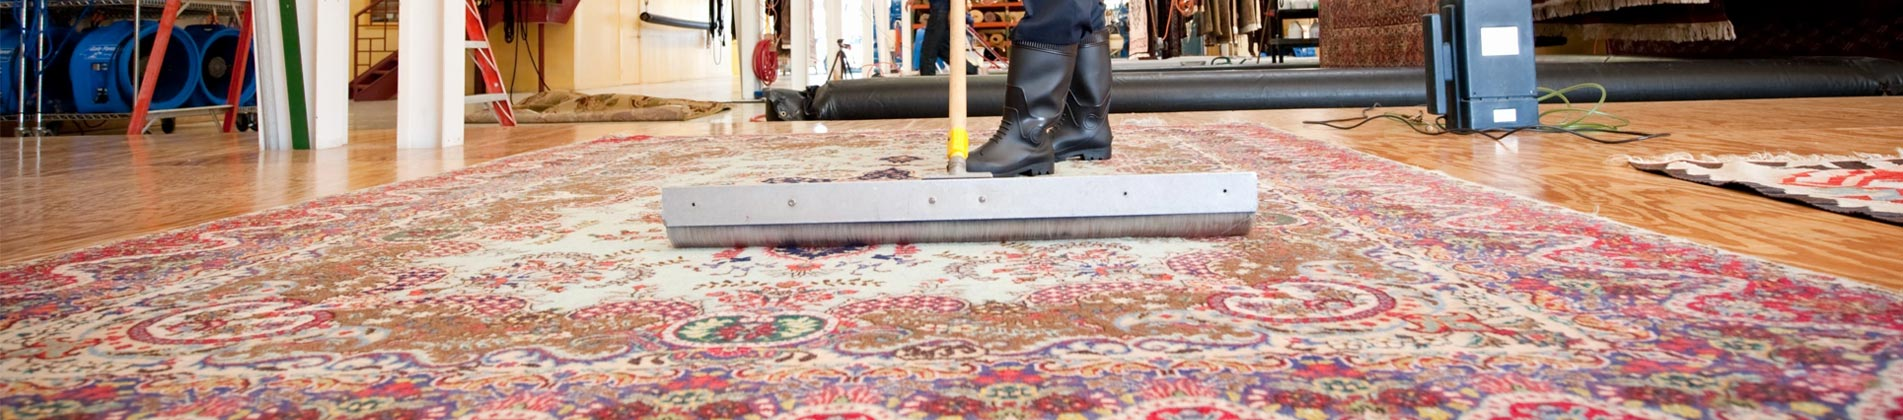 Carpet Cleaning Carpet Cleaning Water Damage Services In Cincinnati Teasdale Fenton